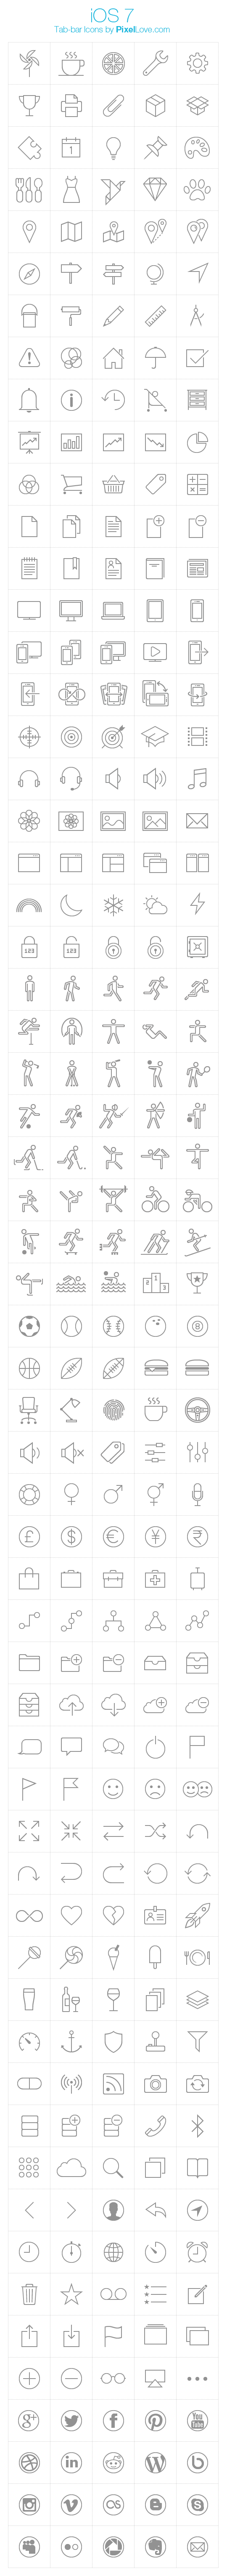 300 Ios 7 Tab Bar Icon Pack For Iphone And Ipad Apps By